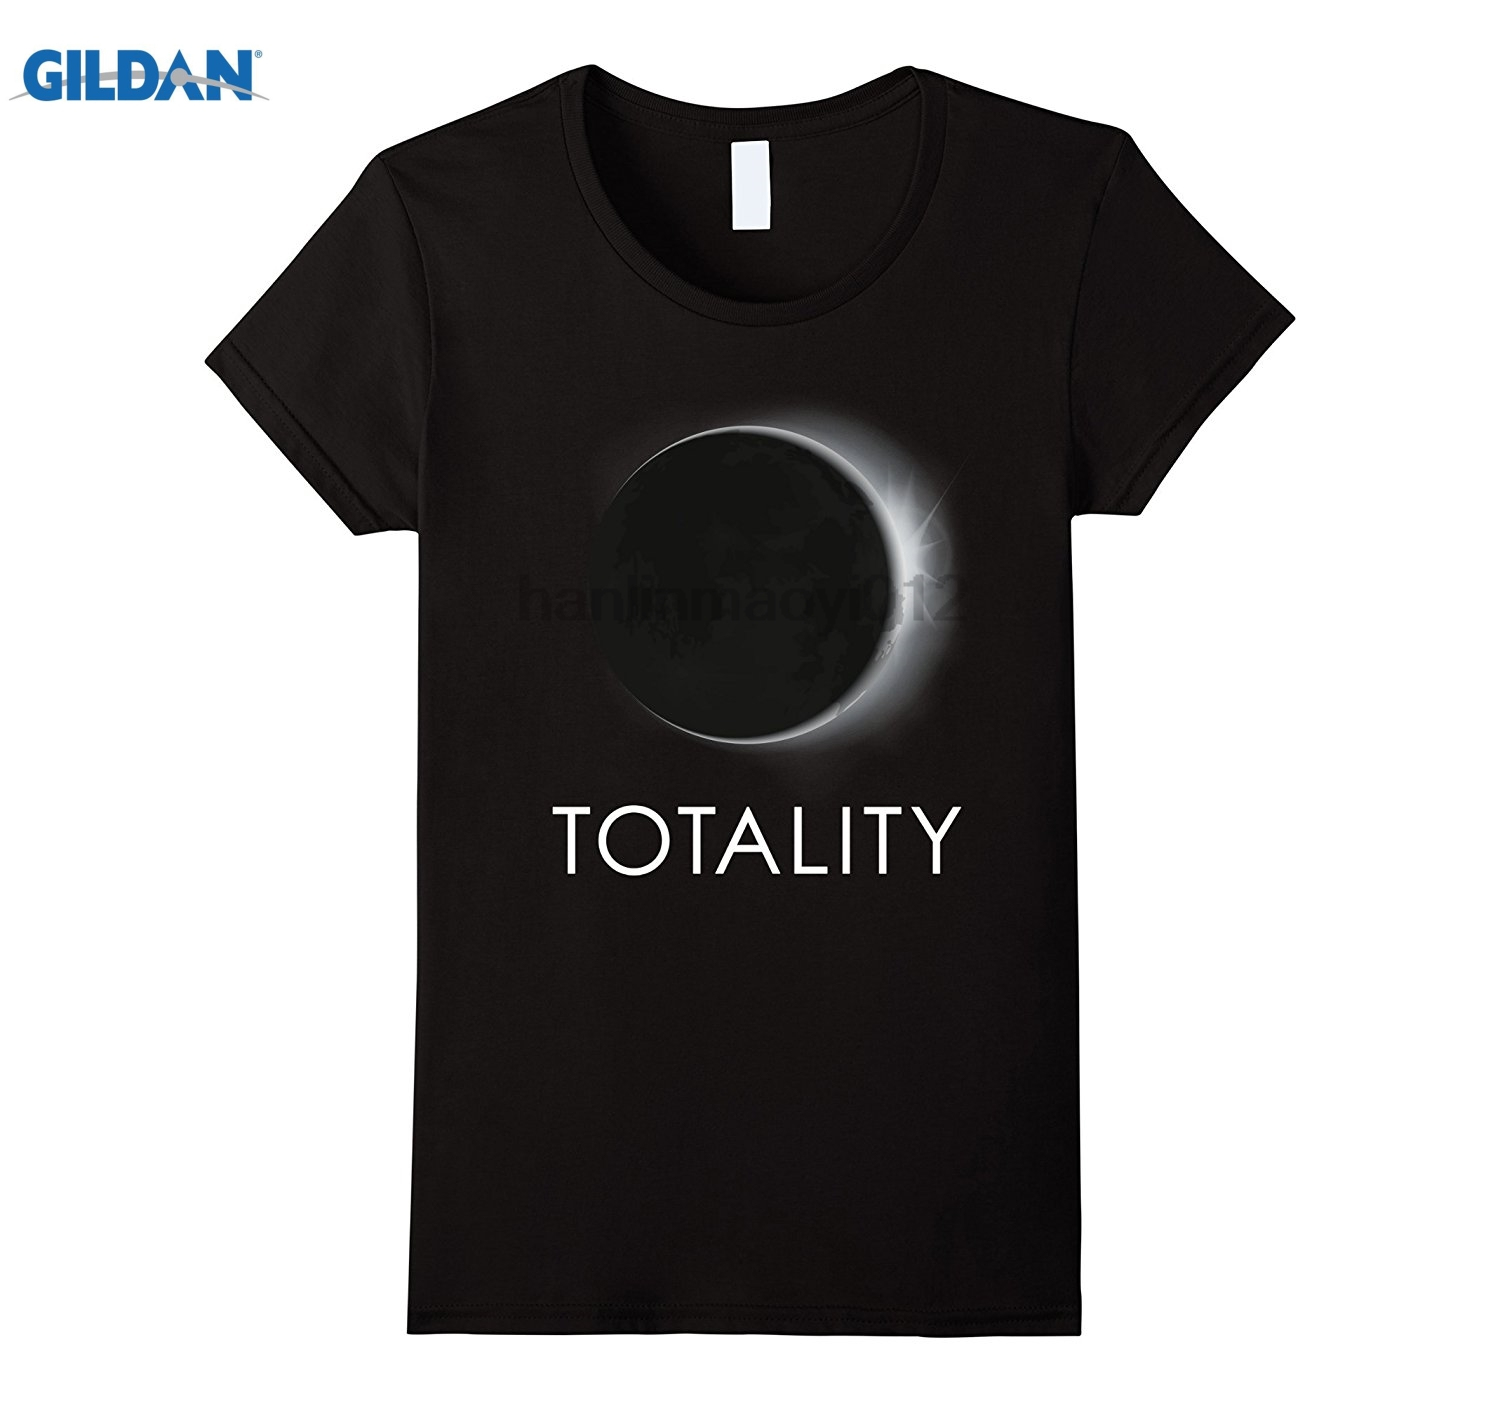 GILDAN Solar Eclipse 2017 - Totality Total Solar Eclipse T-Shirt Dress female T-shirt